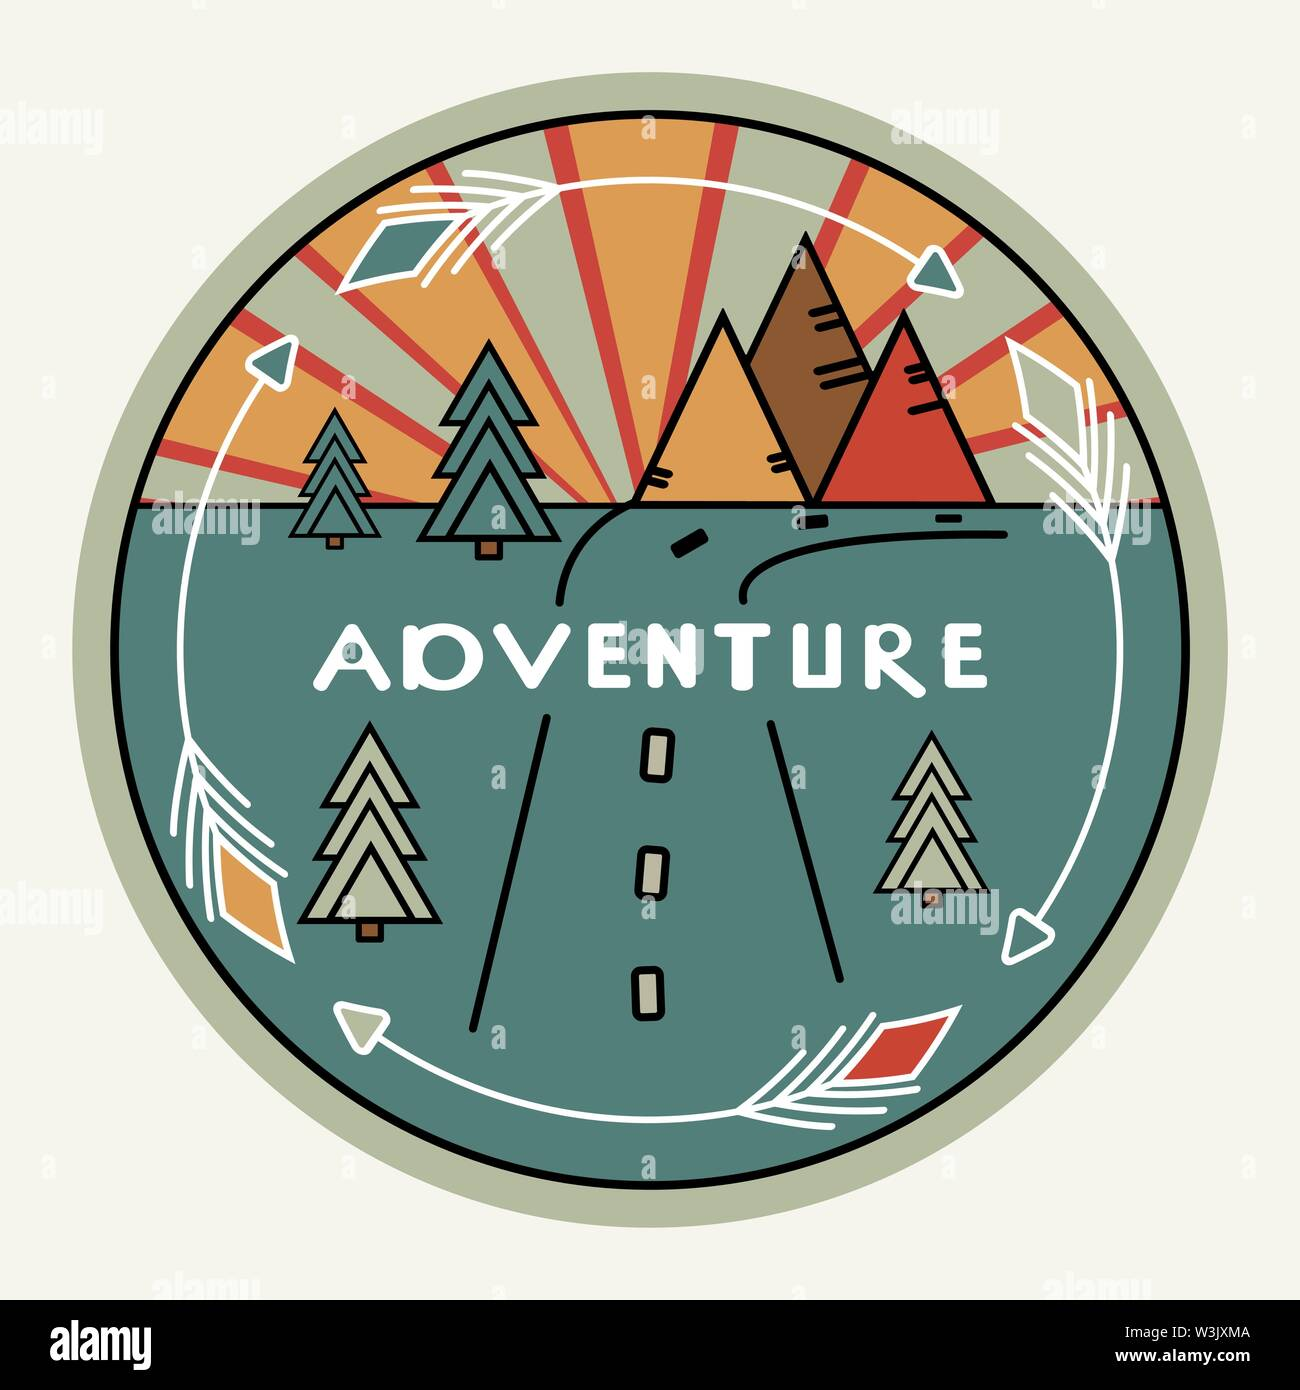 Round retro or vintage style. Outdoor decor for cars, travel. Mountains, pines, sunset. Inscription Adventure. The emblem of tourism. The symbol of the road. Club label for prints, clothes. Inspiring logo illustration. White arrows, gray background - Stock Image